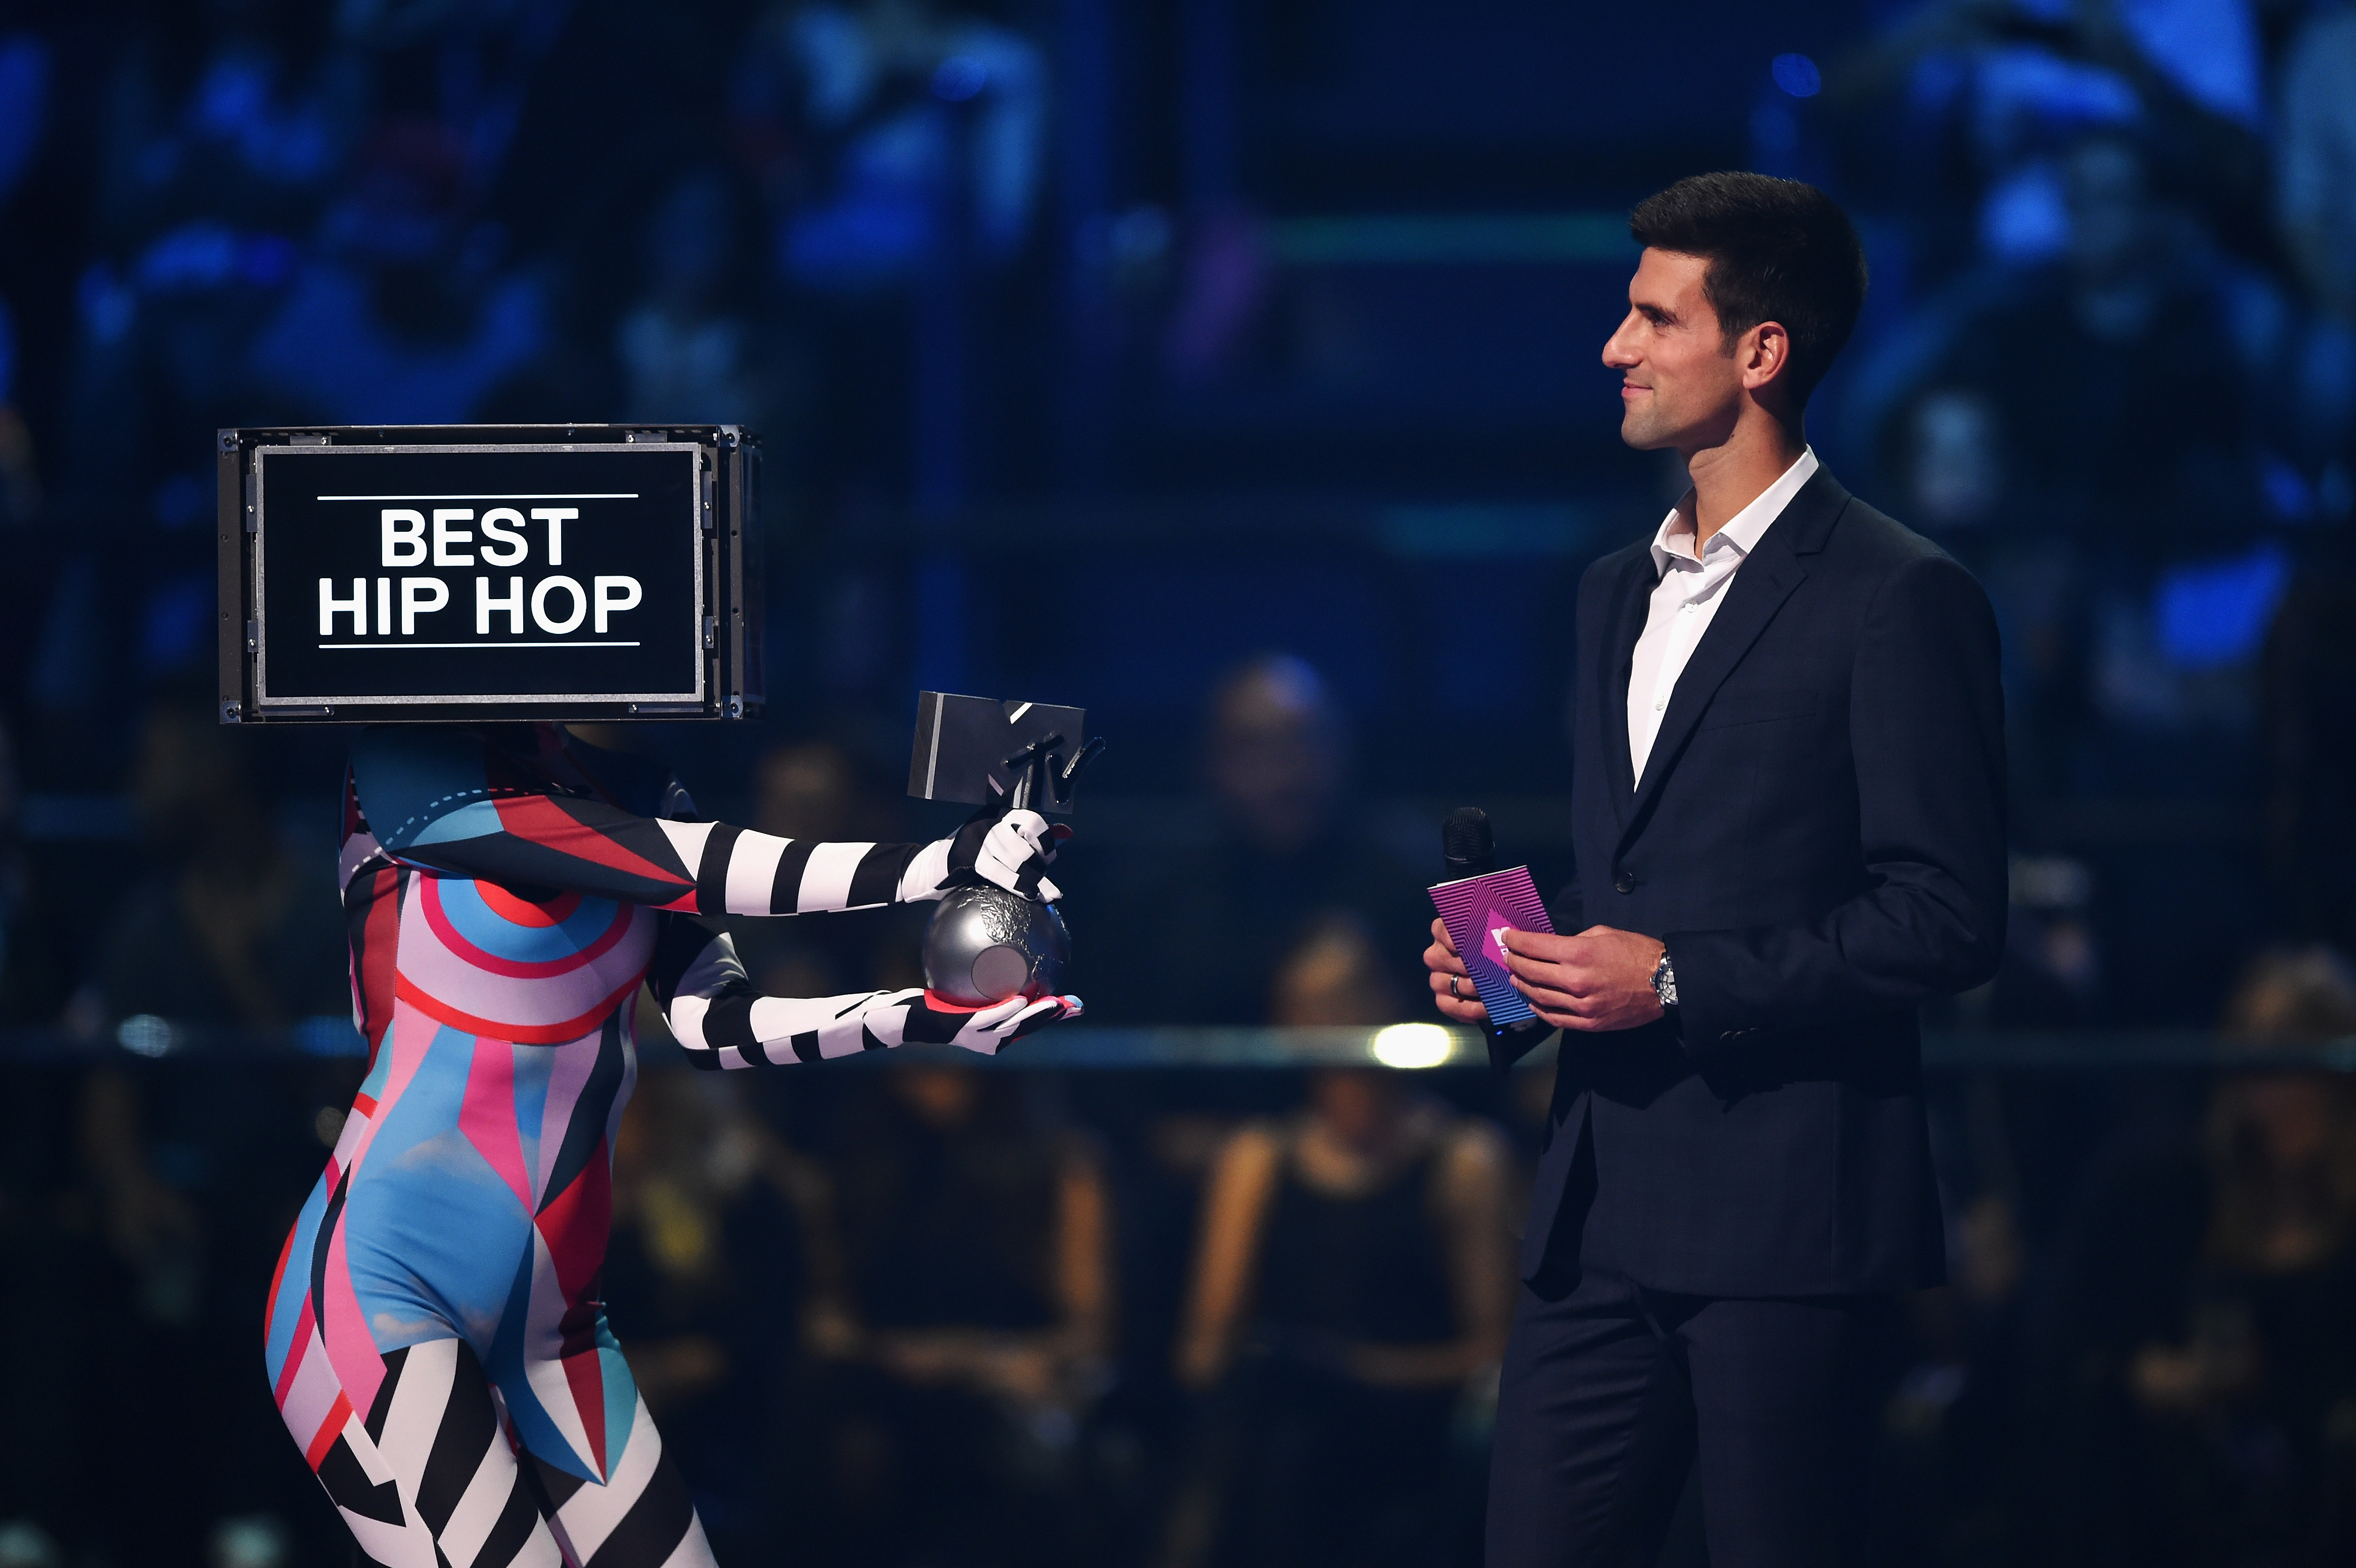 MILAN, ITALY - OCTOBER 25: Tennis pro Novak Djokovic presents best Hip-Hop award on stage during the MTV EMA's 2015 at the Mediolanum Forum on October 25, 2015 in Milan, Italy. (Photo by Brian Rasic/Getty Images for MTV) *** Local Caption *** Novak Djokovic